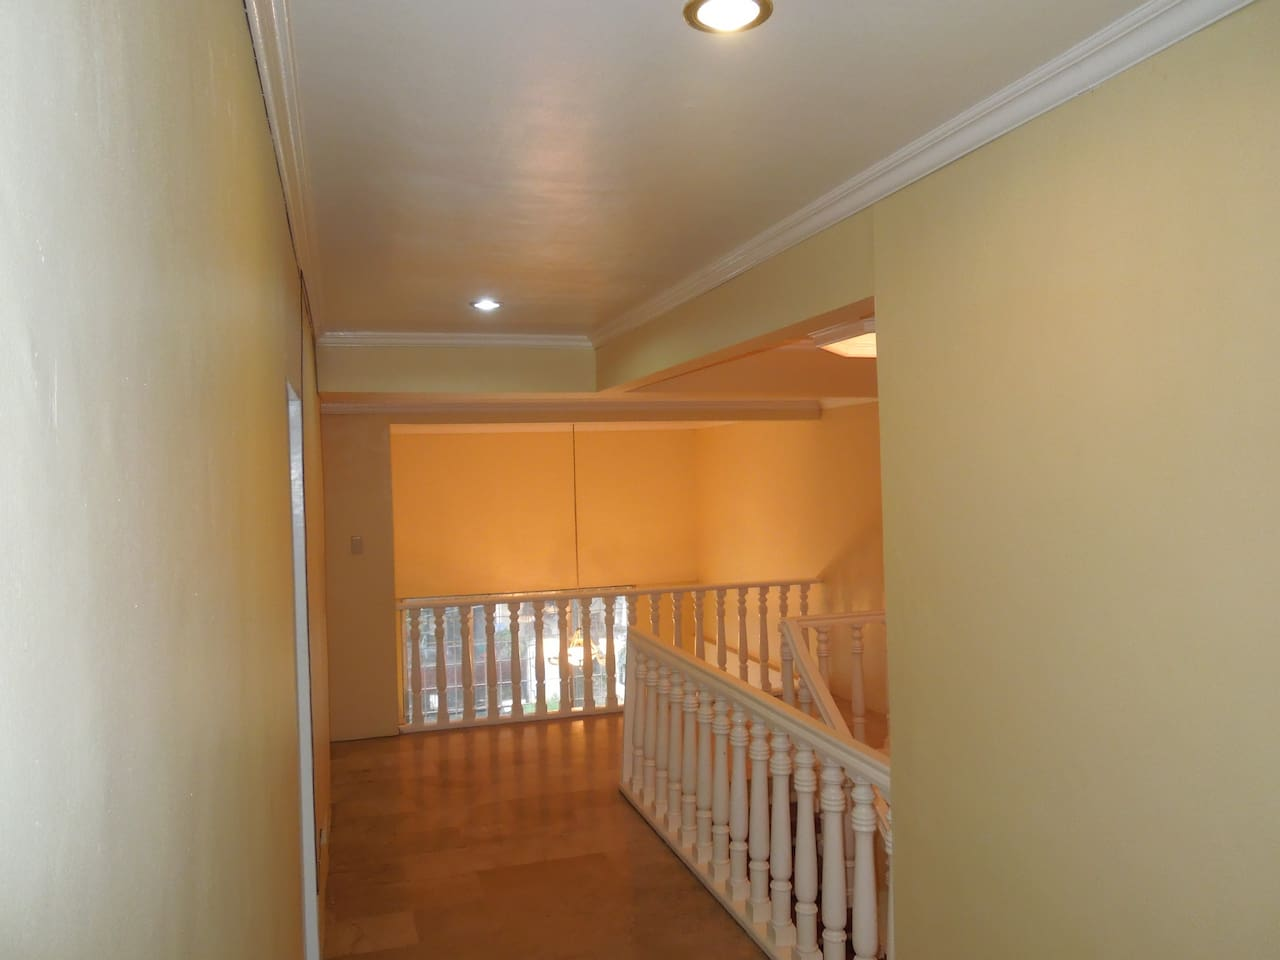 Crib for sale in olongapo - Barrio Barretto House Subic Bay Houses For Rent In Subic Central Luzon Philippines